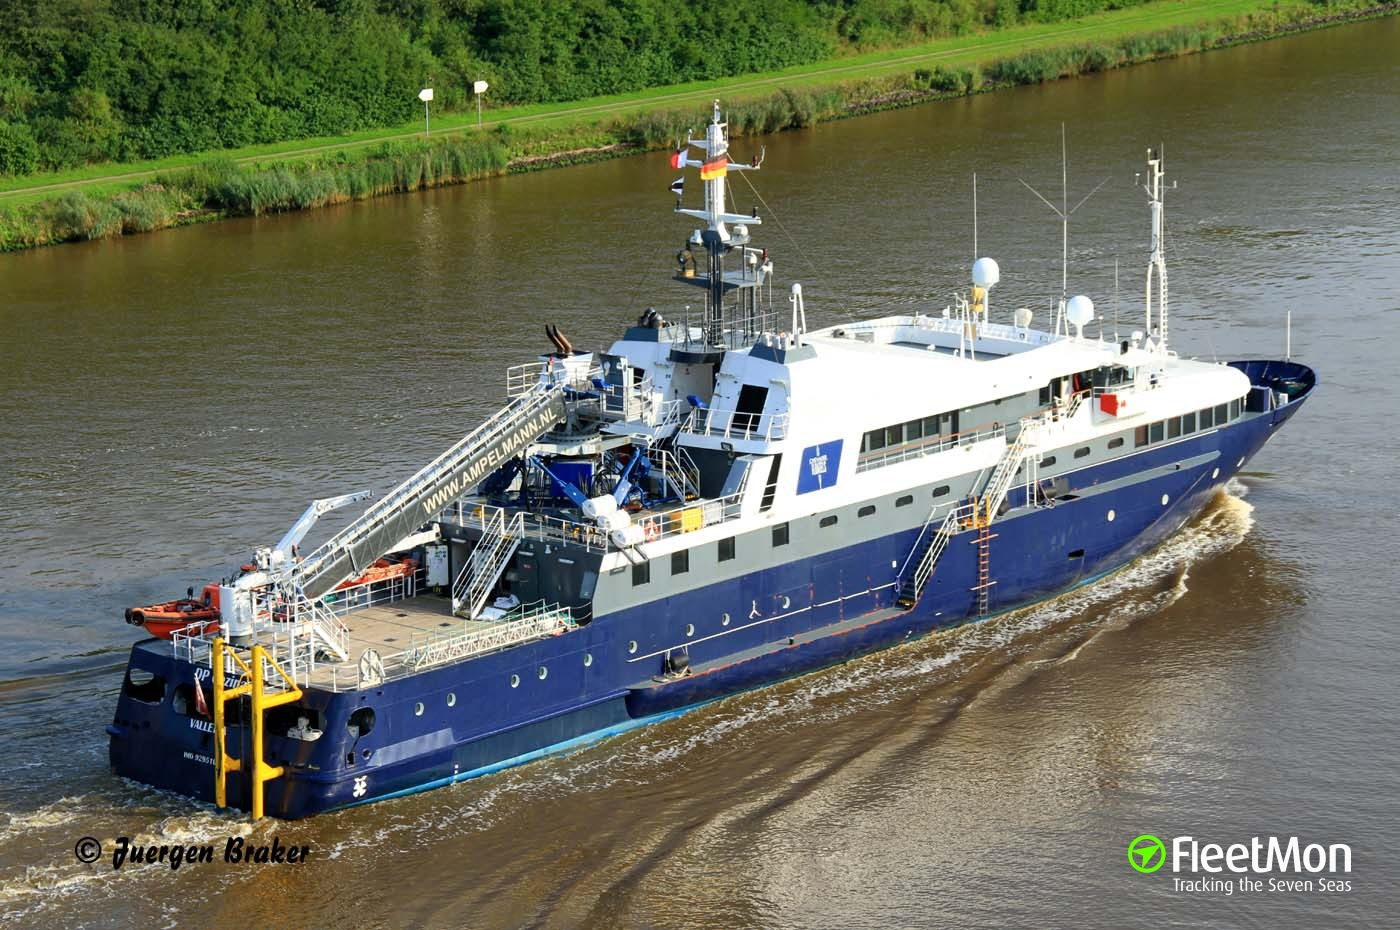 Gps Fleet Tracking Pricing >> Photo of DP GEZINA (IMO: 9295103, MMSI: 229417000, Callsign: 9HA3317) taken by miraflores